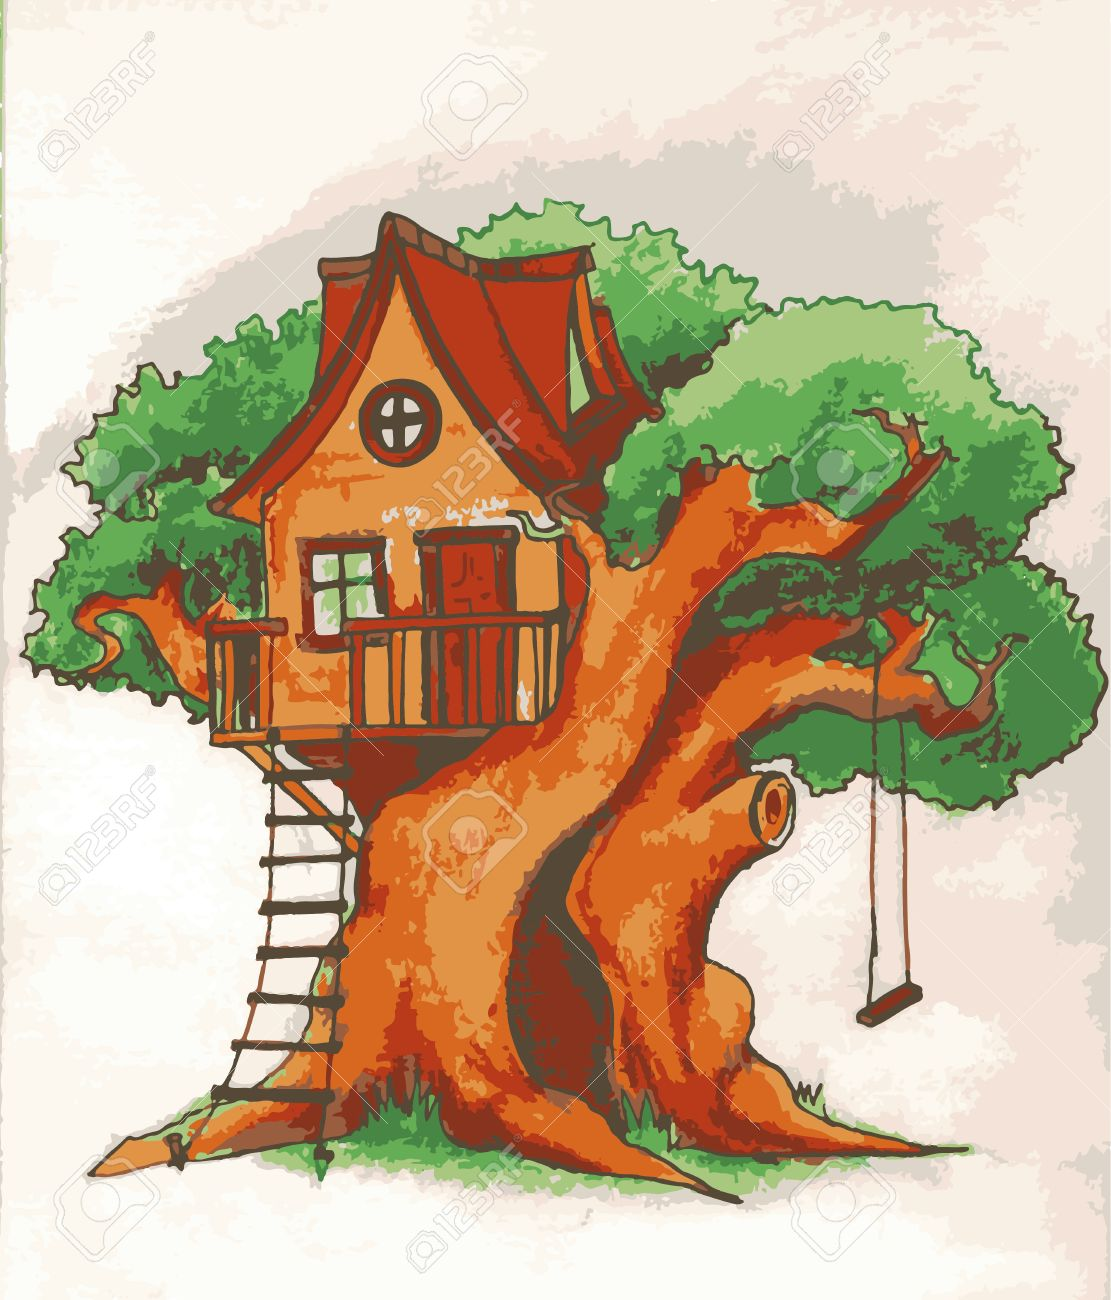 Tree House House On Tree For Kids Children Playground With Royalty Free Cliparts Vectors And Stock Illustration Image 68501001